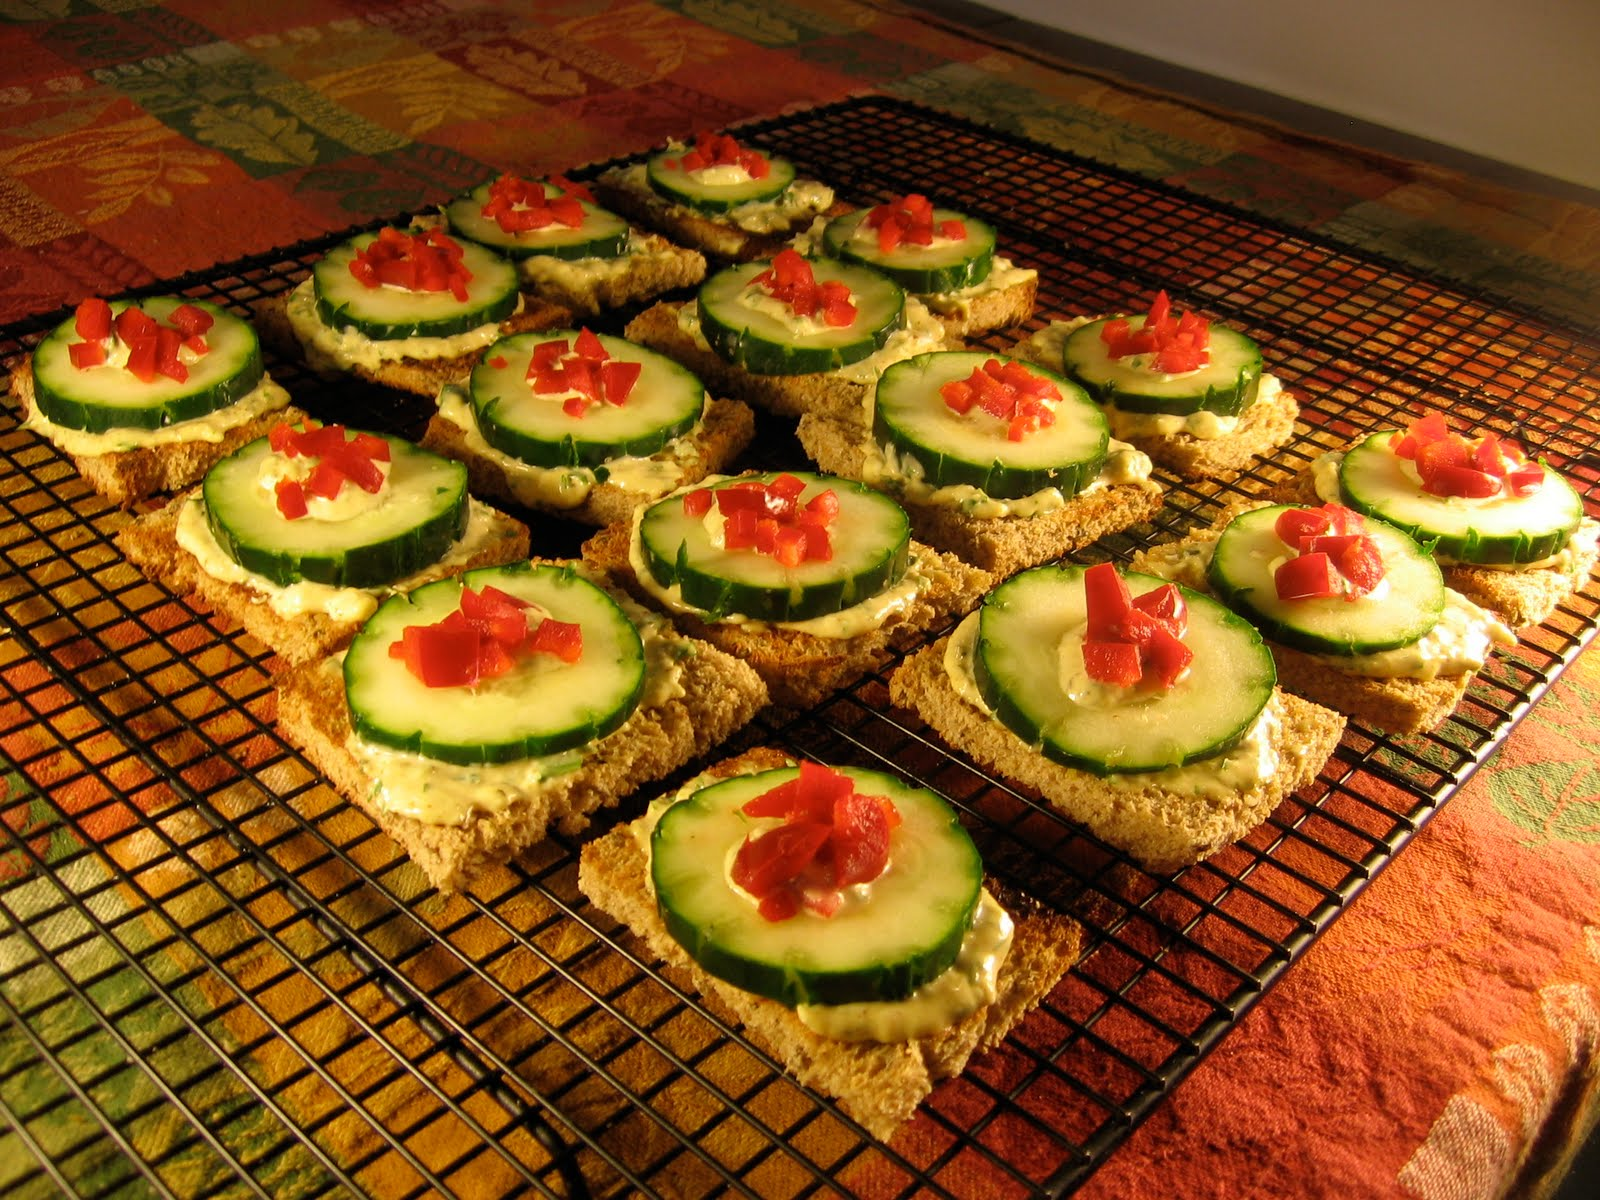 Cucumber canap s vegetarian underground for Vegetarian canape